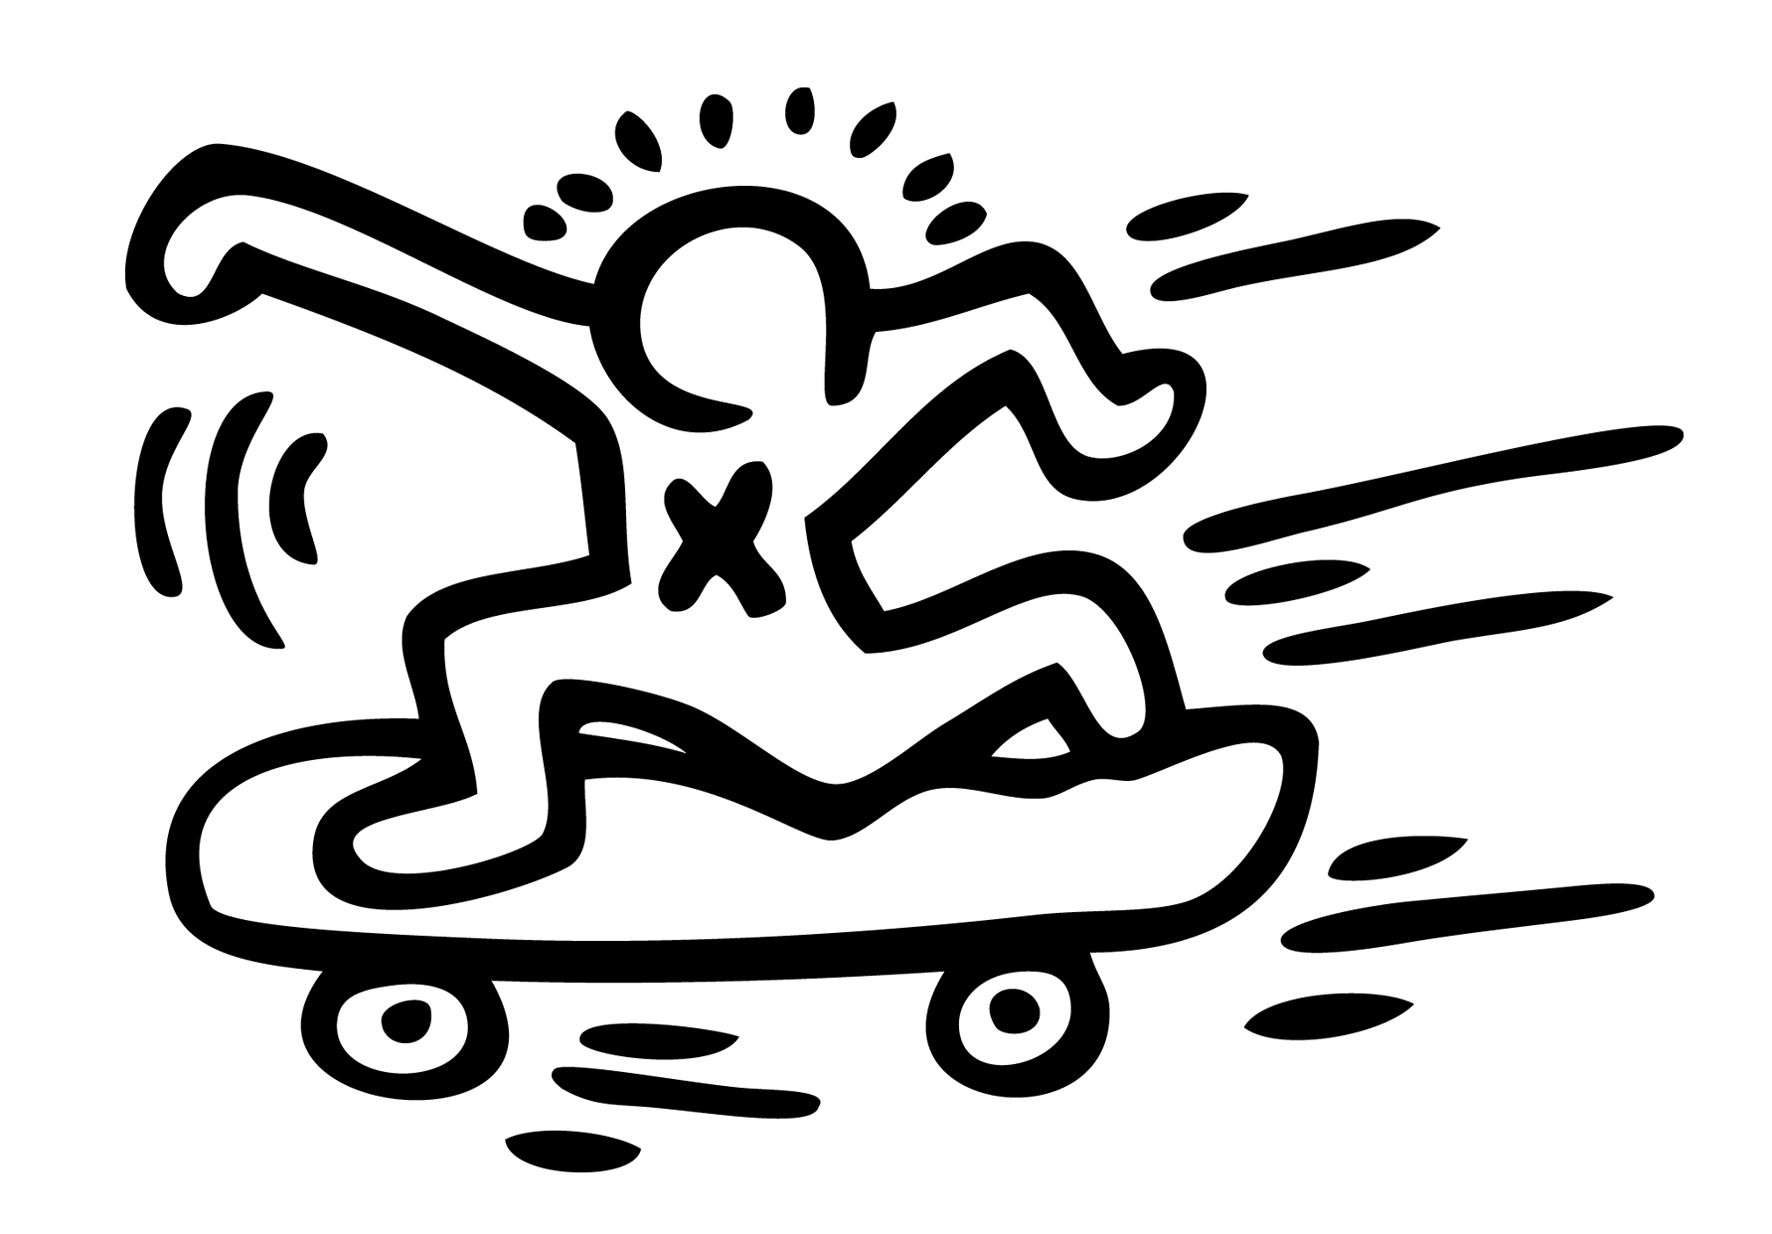 Incredible Keith Haring coloring page to print and color for free